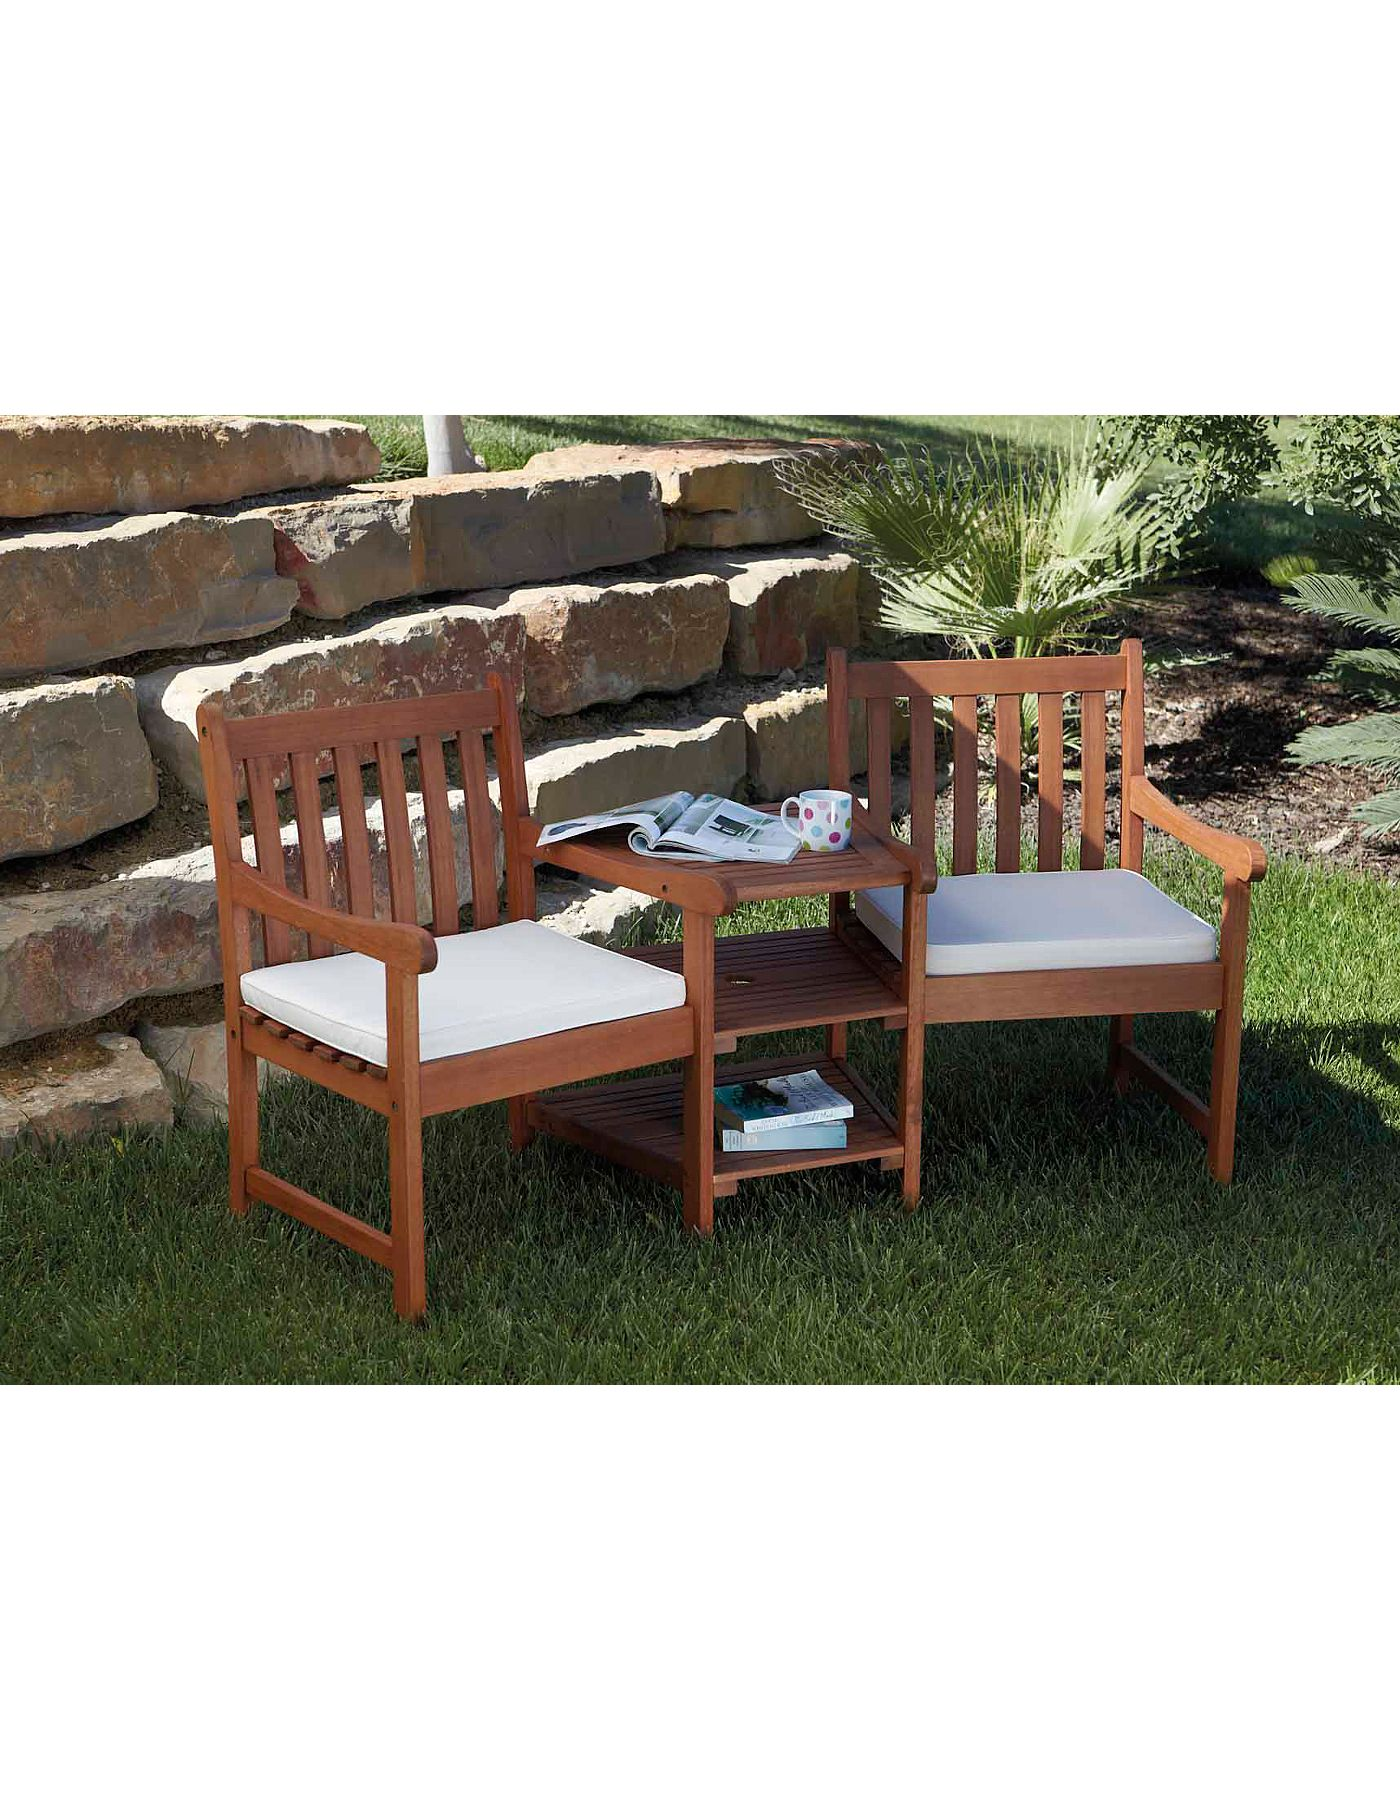 Jack & Jill Twin Garden Seat | Garden Furniture | ASDA direct - Jack & Jill Twin Garden Seat Garden Furniture ASDA Direct